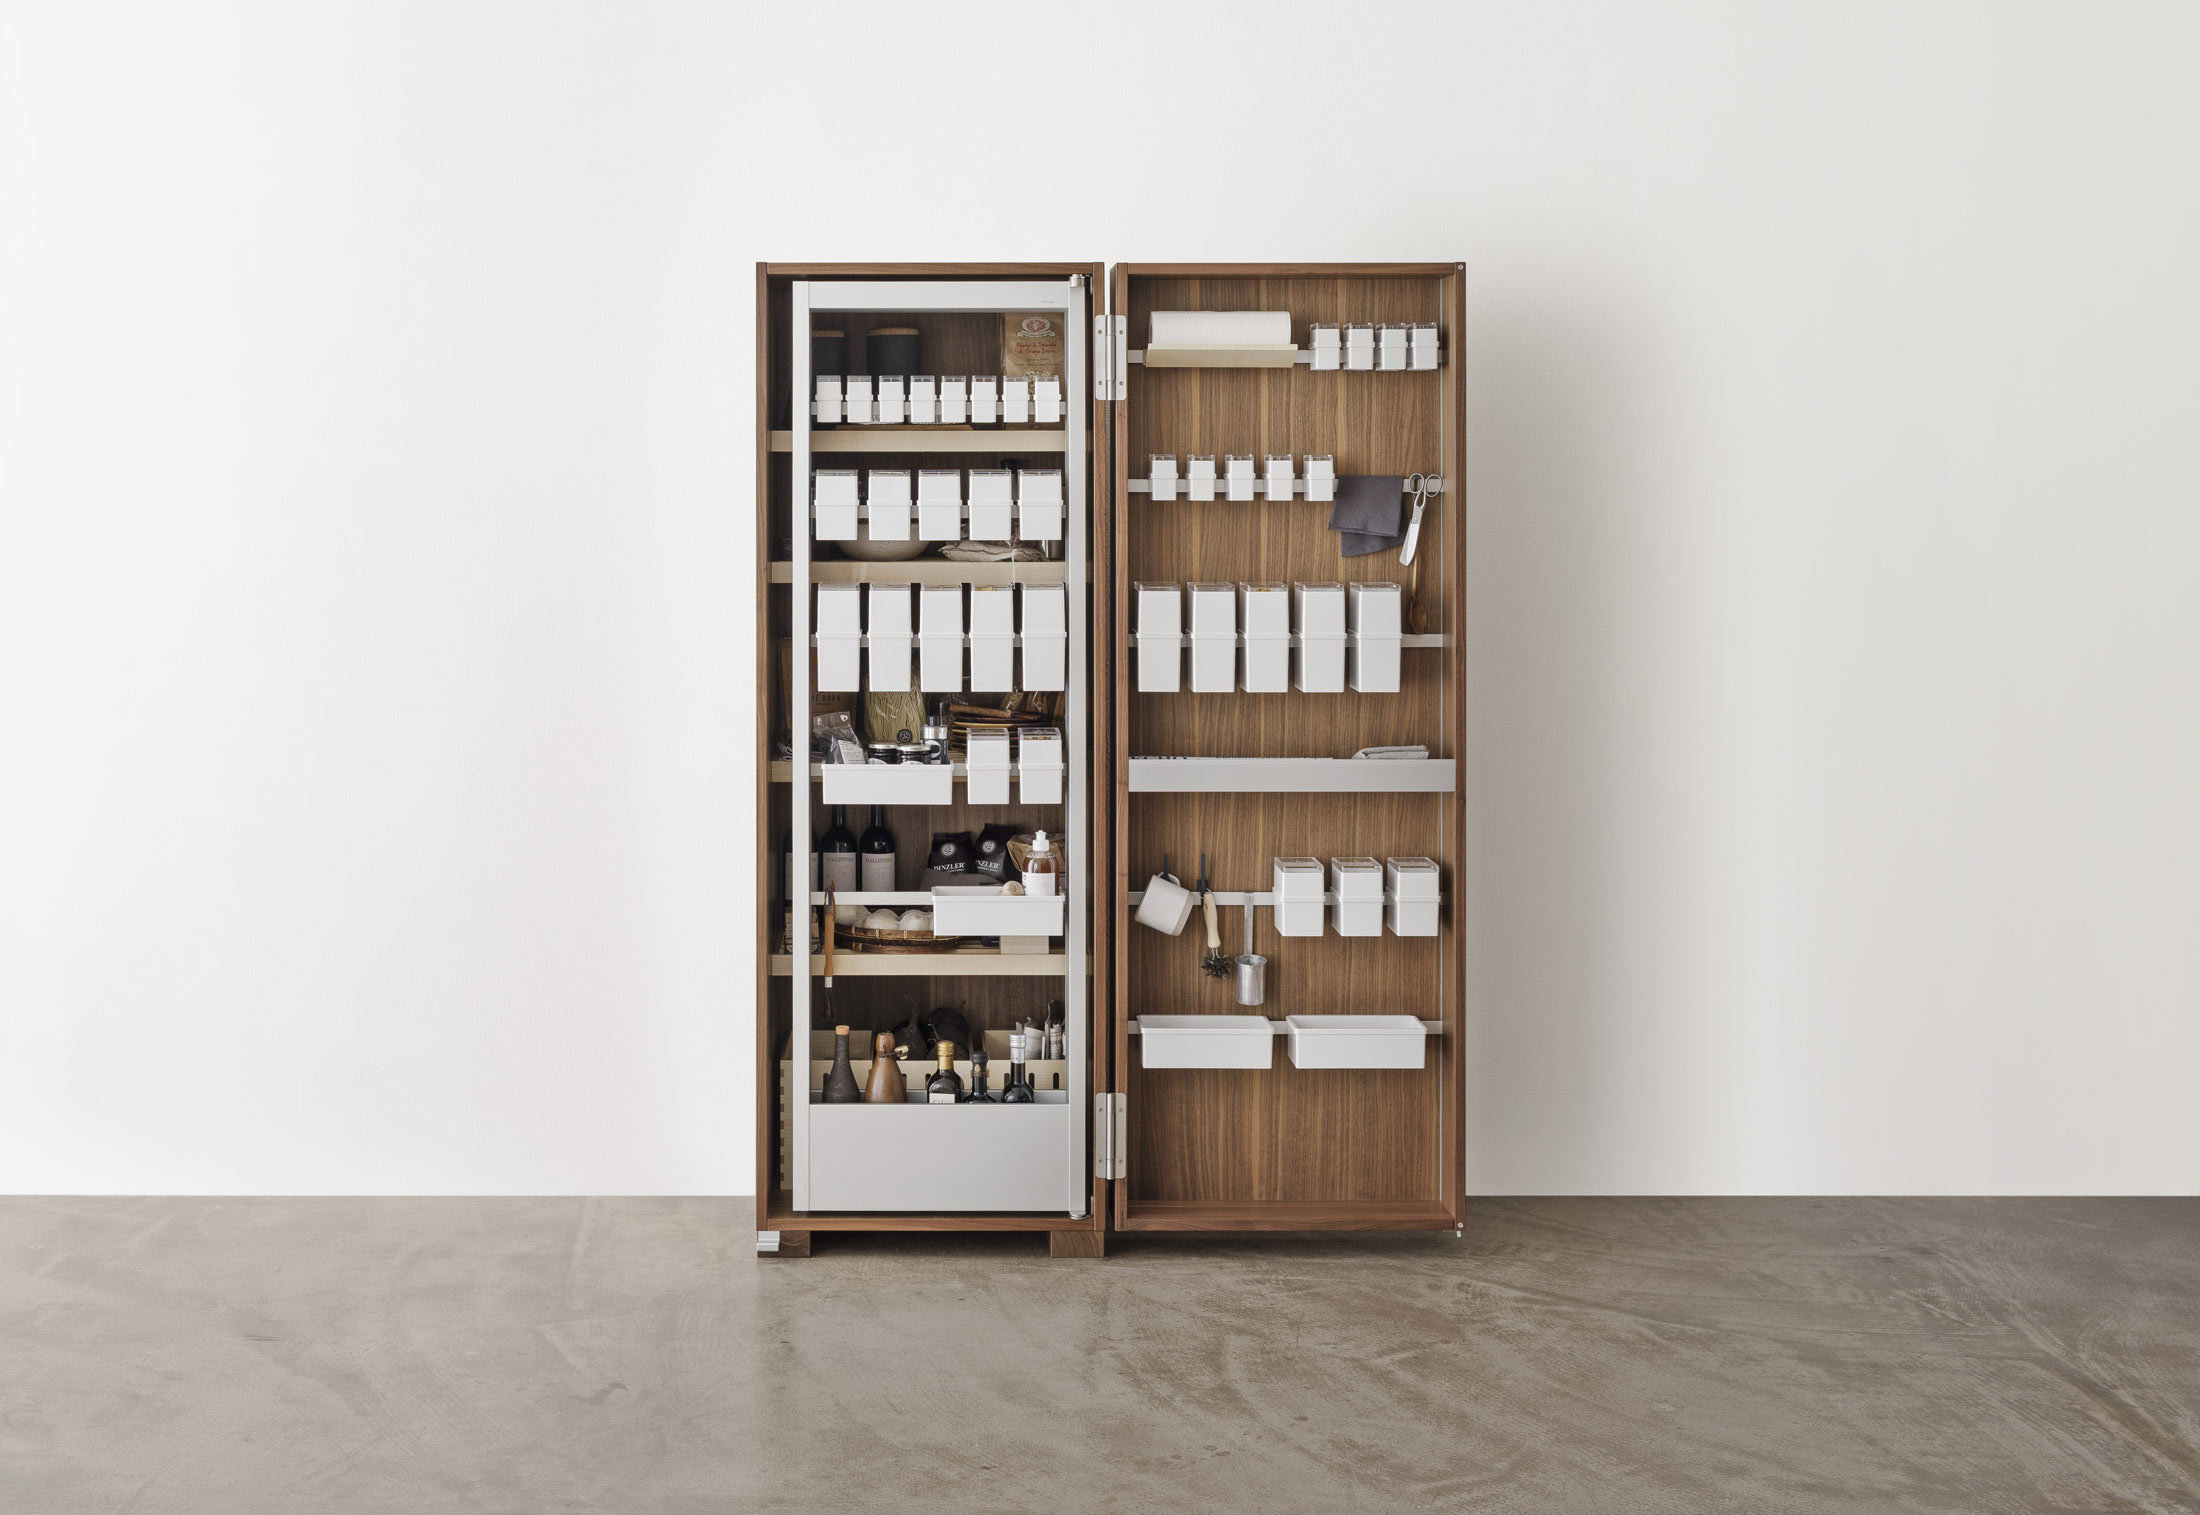 Bulthaup Küchen Bulthaup B2 Kitchen Tool Cabinet By Bulthaup Stylepark